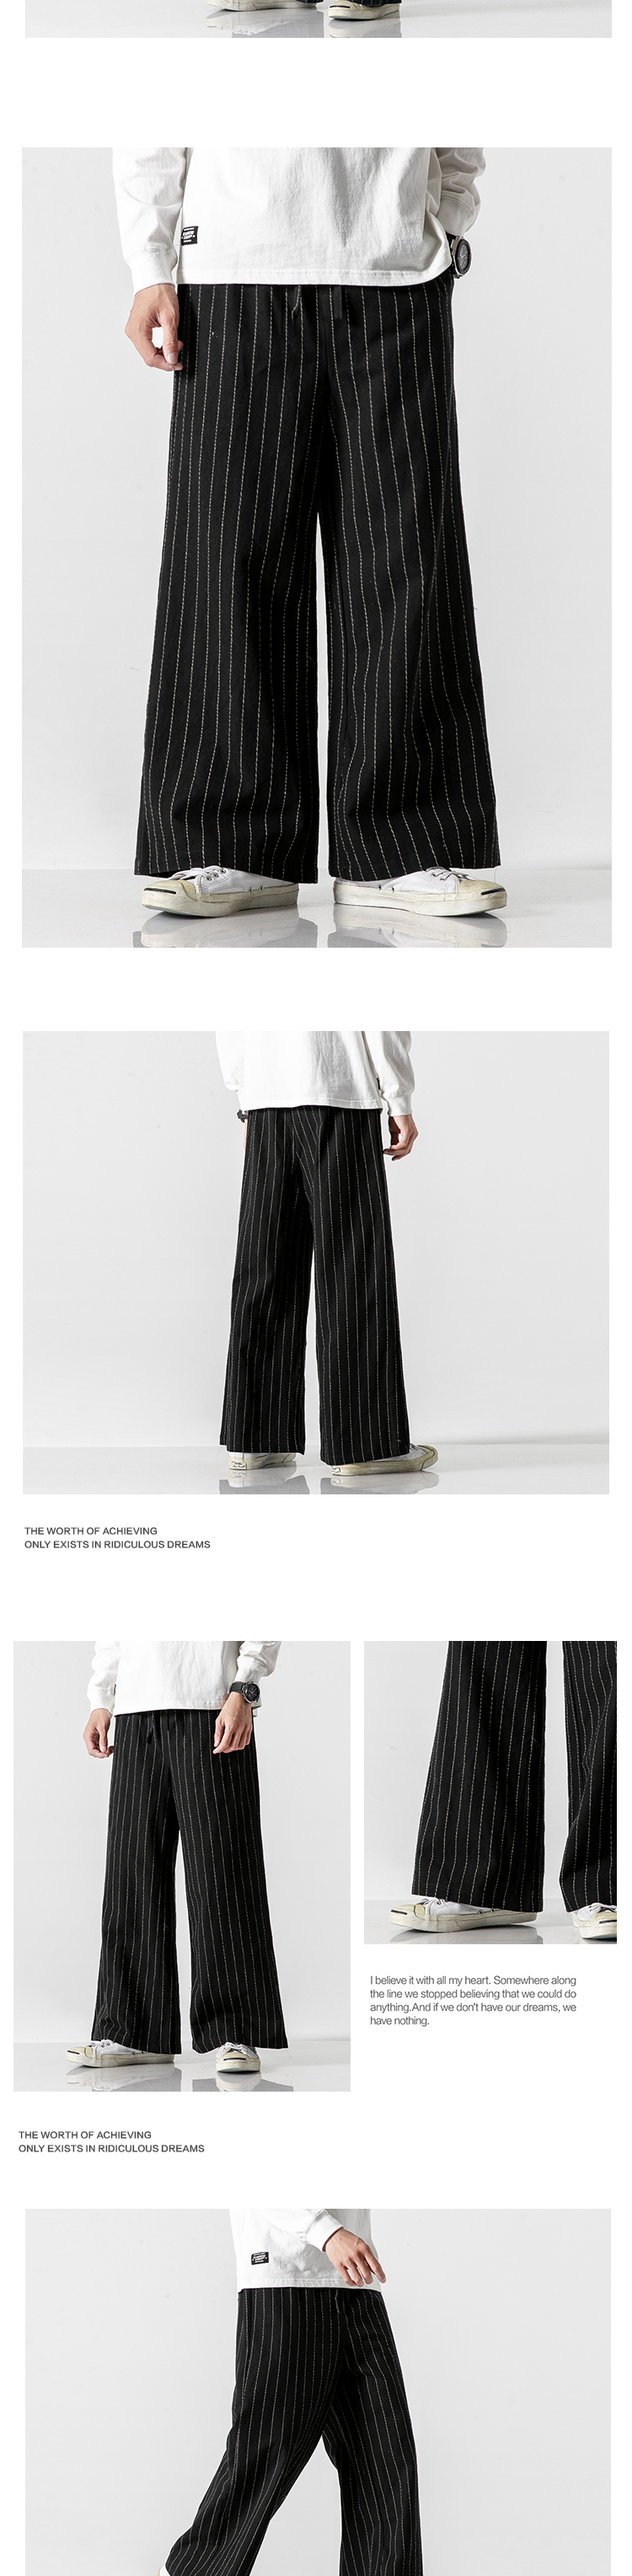 Sinicism Store Men Striped Chinese Style Wide Leg Pants Mens 2020 Japan Style Loose Trousers Male Oversize Vintage Casual Pants 35